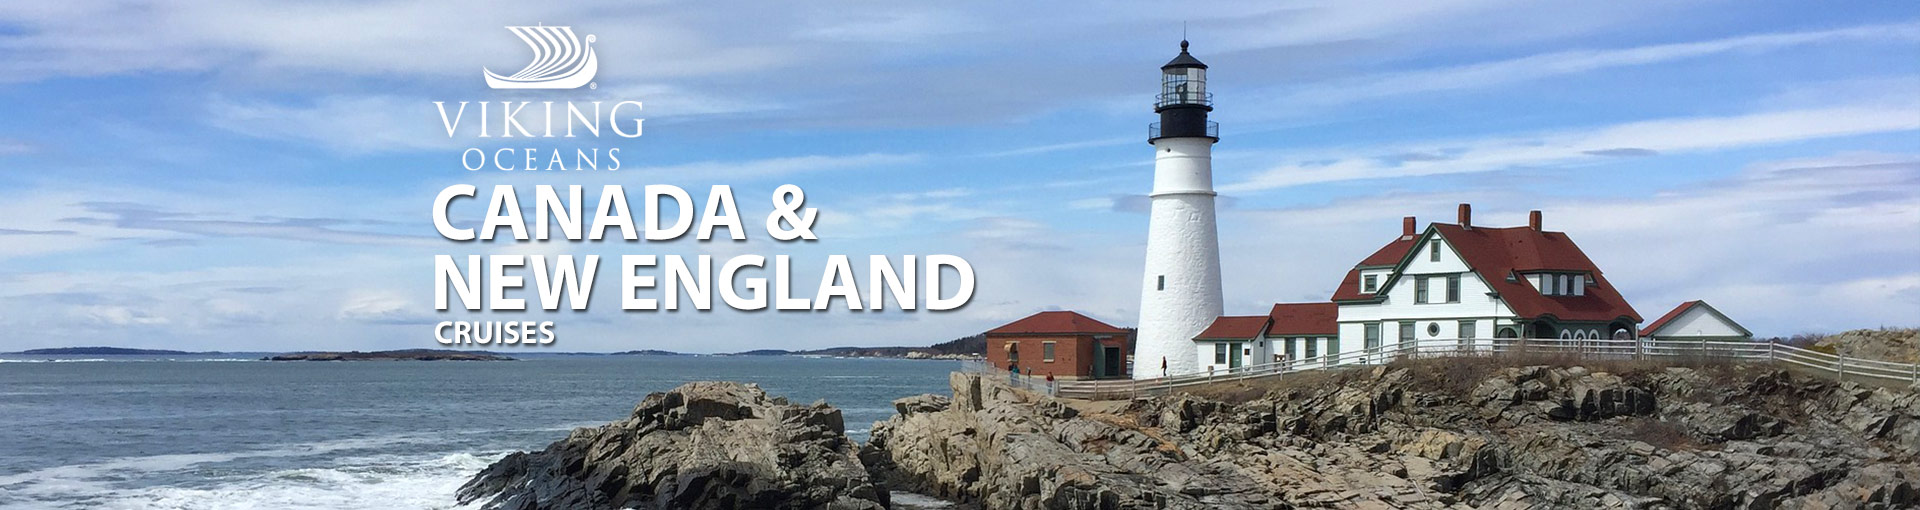 Viking Ocean Cruises to Canada and New England